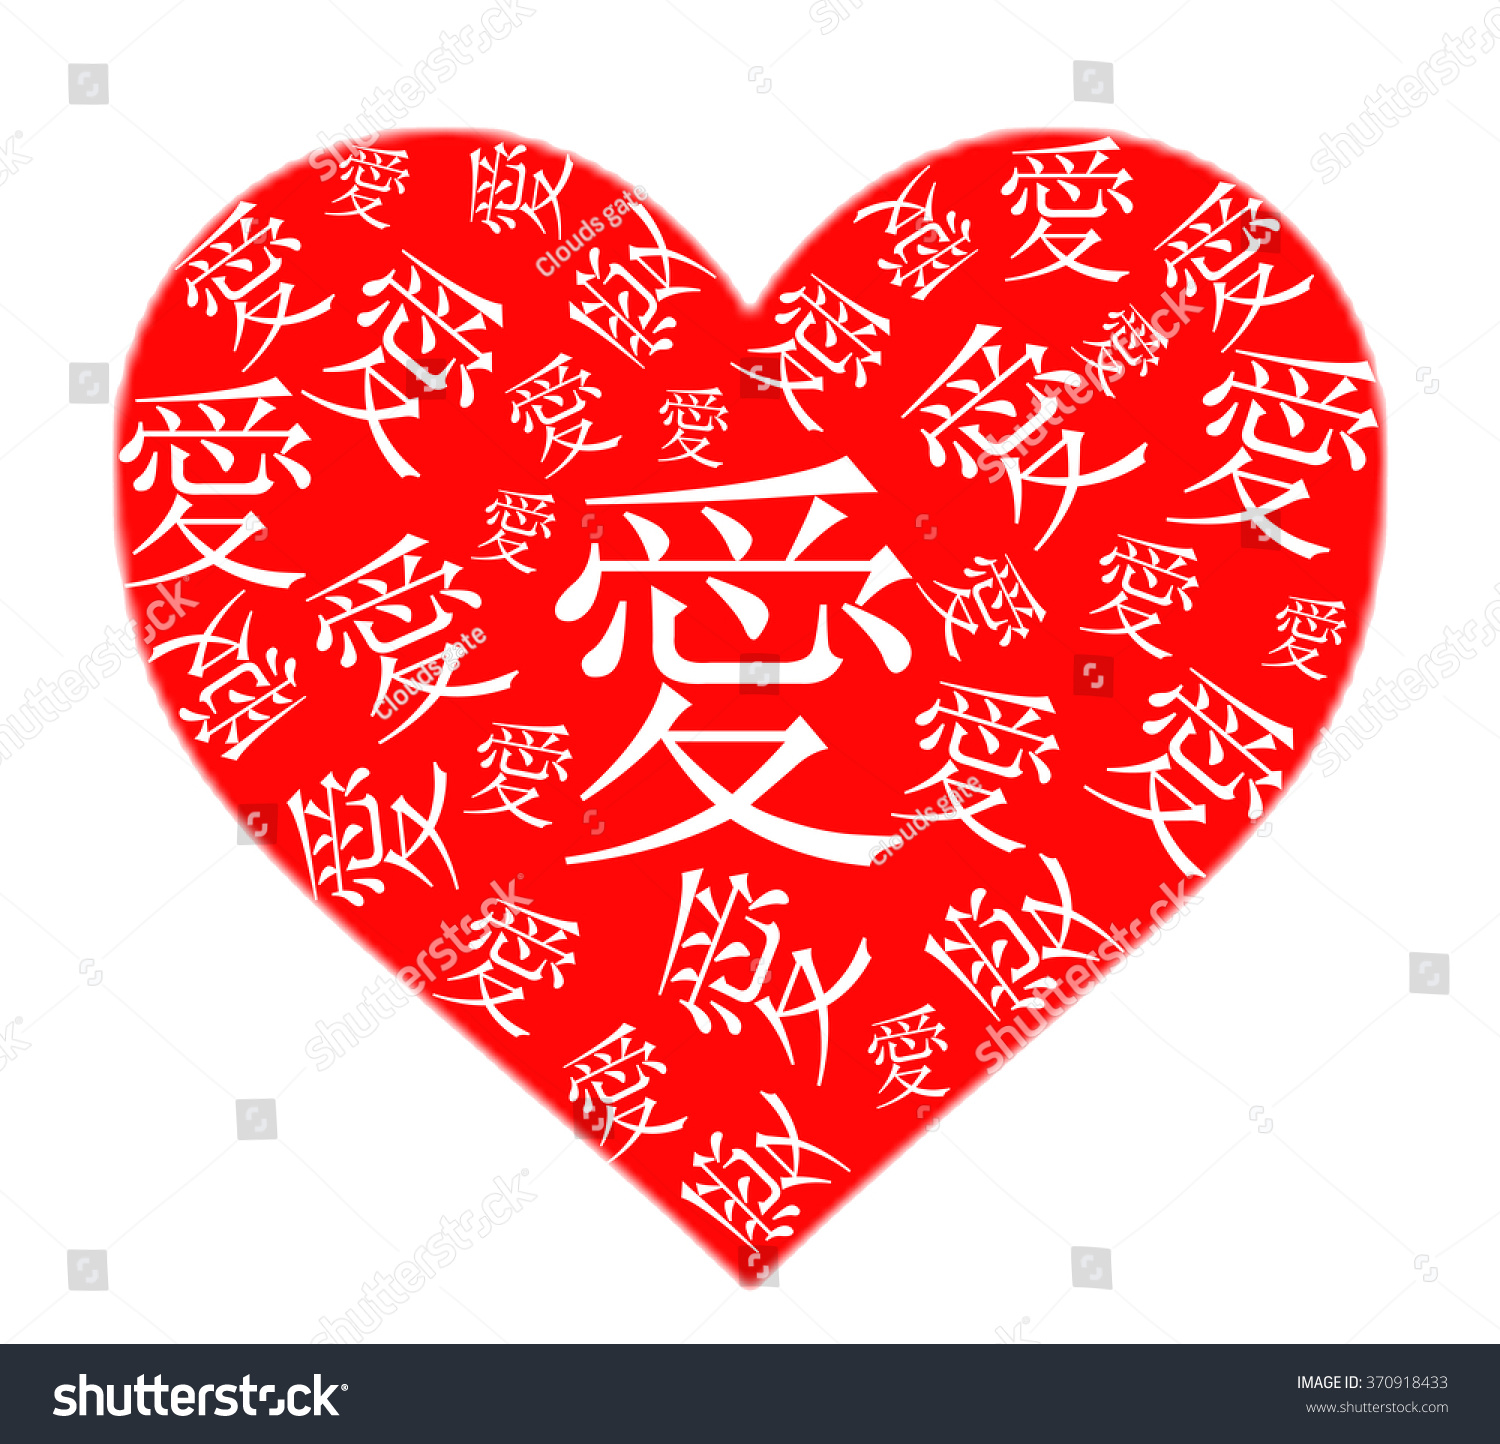 Heart Shape Chinese Character Ai Which Stock Illustration 370918433